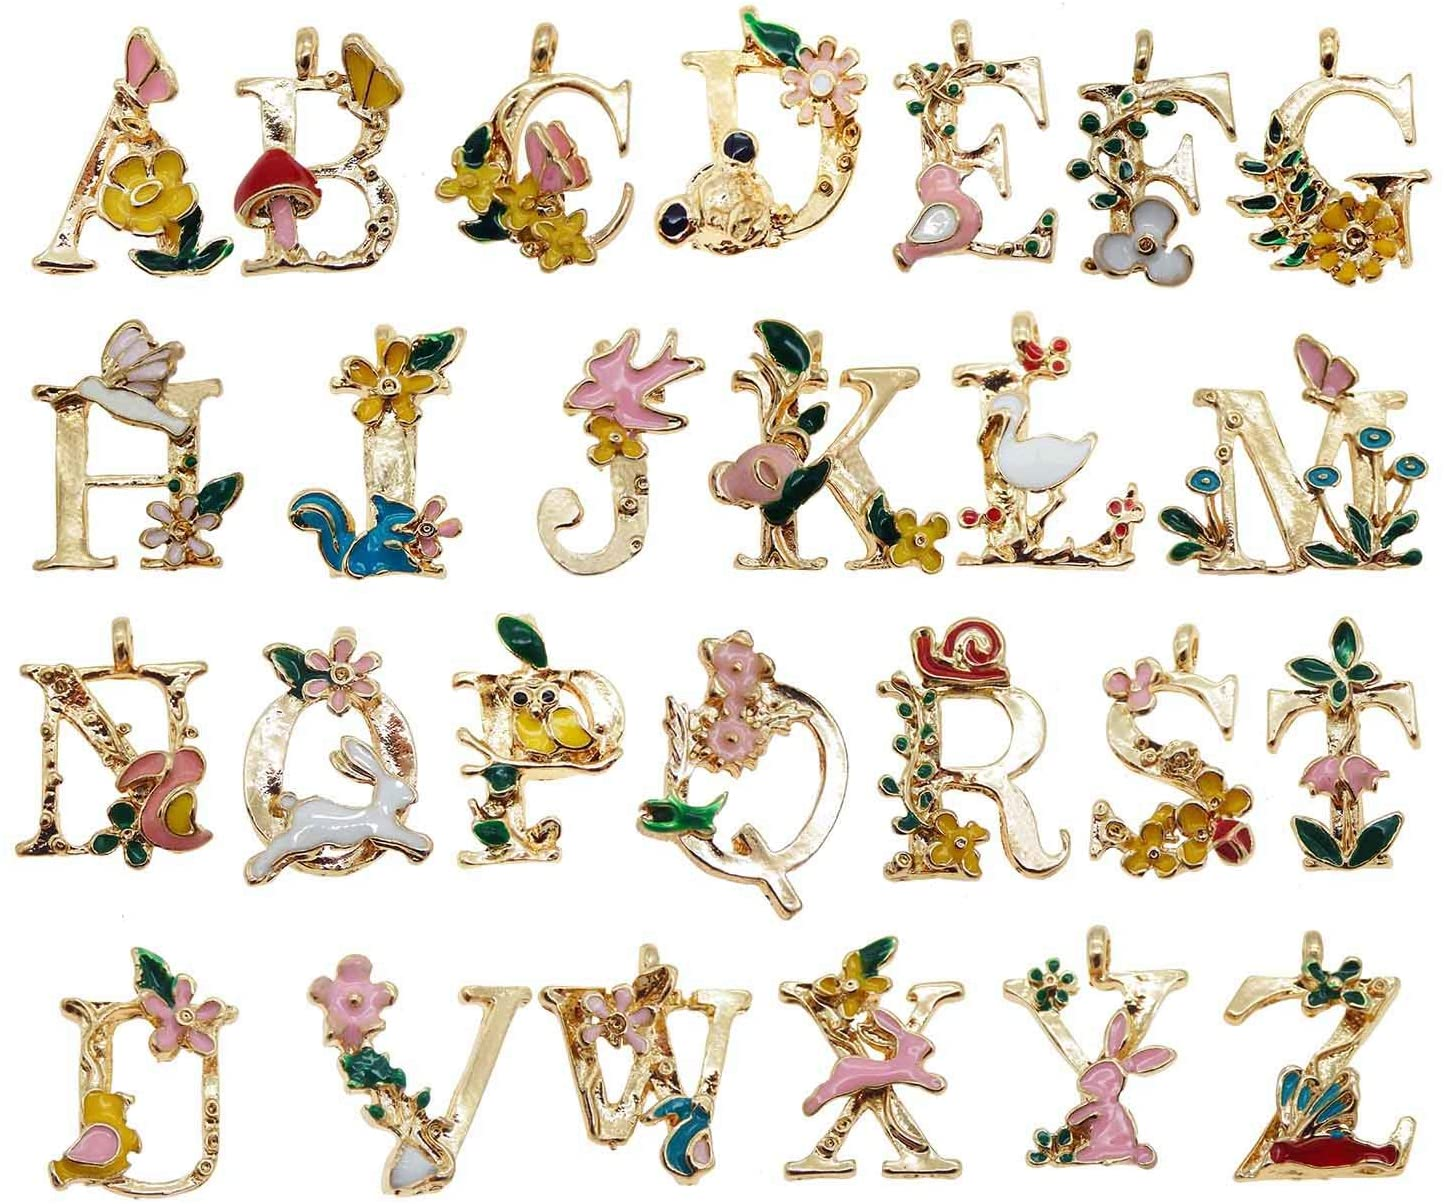 26 Initial Alphabet Letter Charms Pendants Garden Fairy Tale Princess Kids Children Style for Jewelry Craft DIY